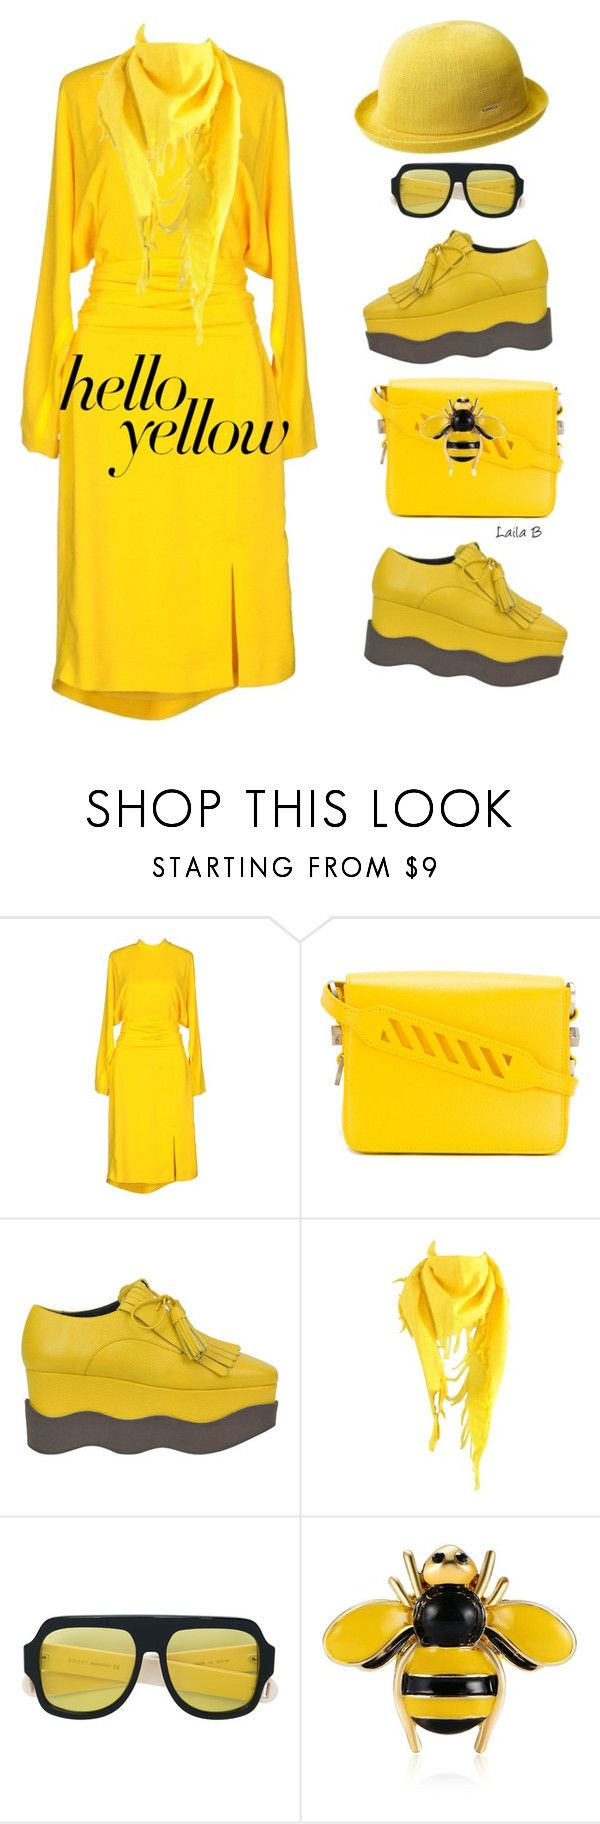 """""""Get Happy with Yellow!"""" by laila-bergan ❤ liked on Polyvore featuring Salvatore Ferragamo, Off-White, Paloma Barceló, Balenciaga, Gucci and kangol"""